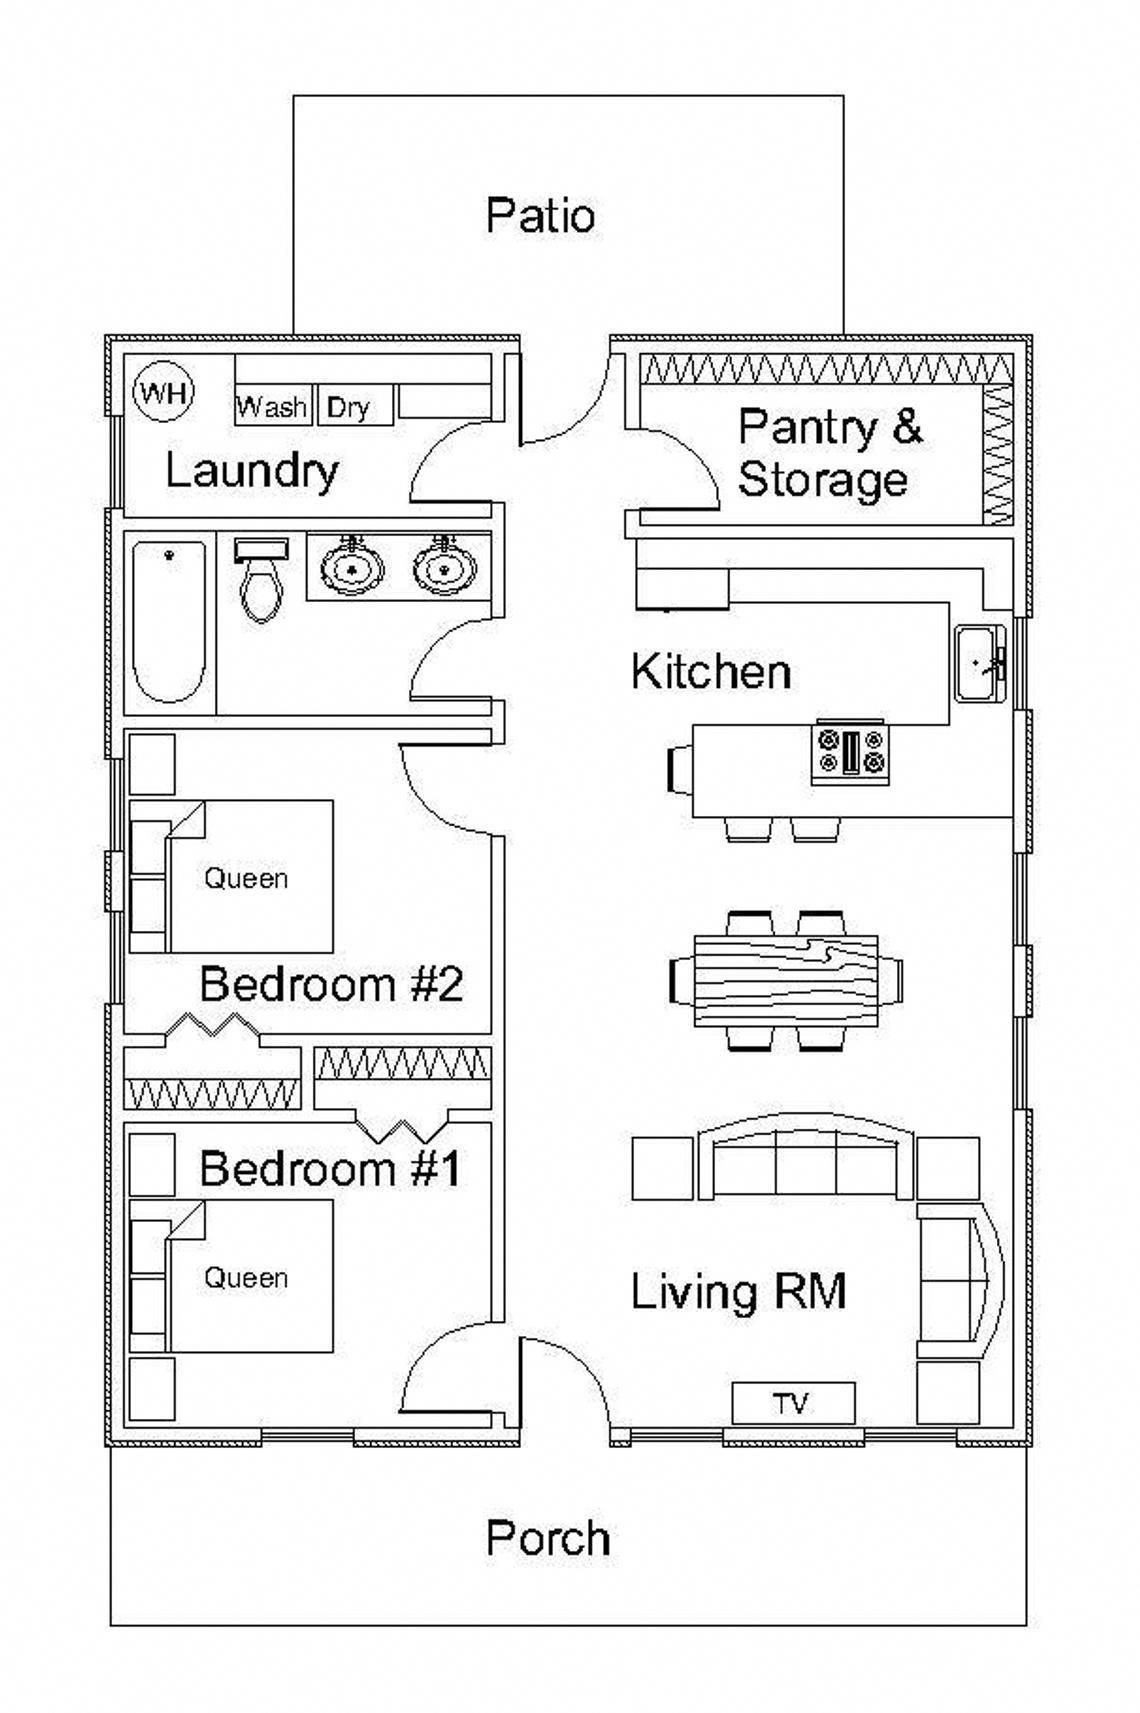 This Thing Can Be An Inspiring And Superb Idea Custom Home Plans Kitchen Floor Plans House Plans